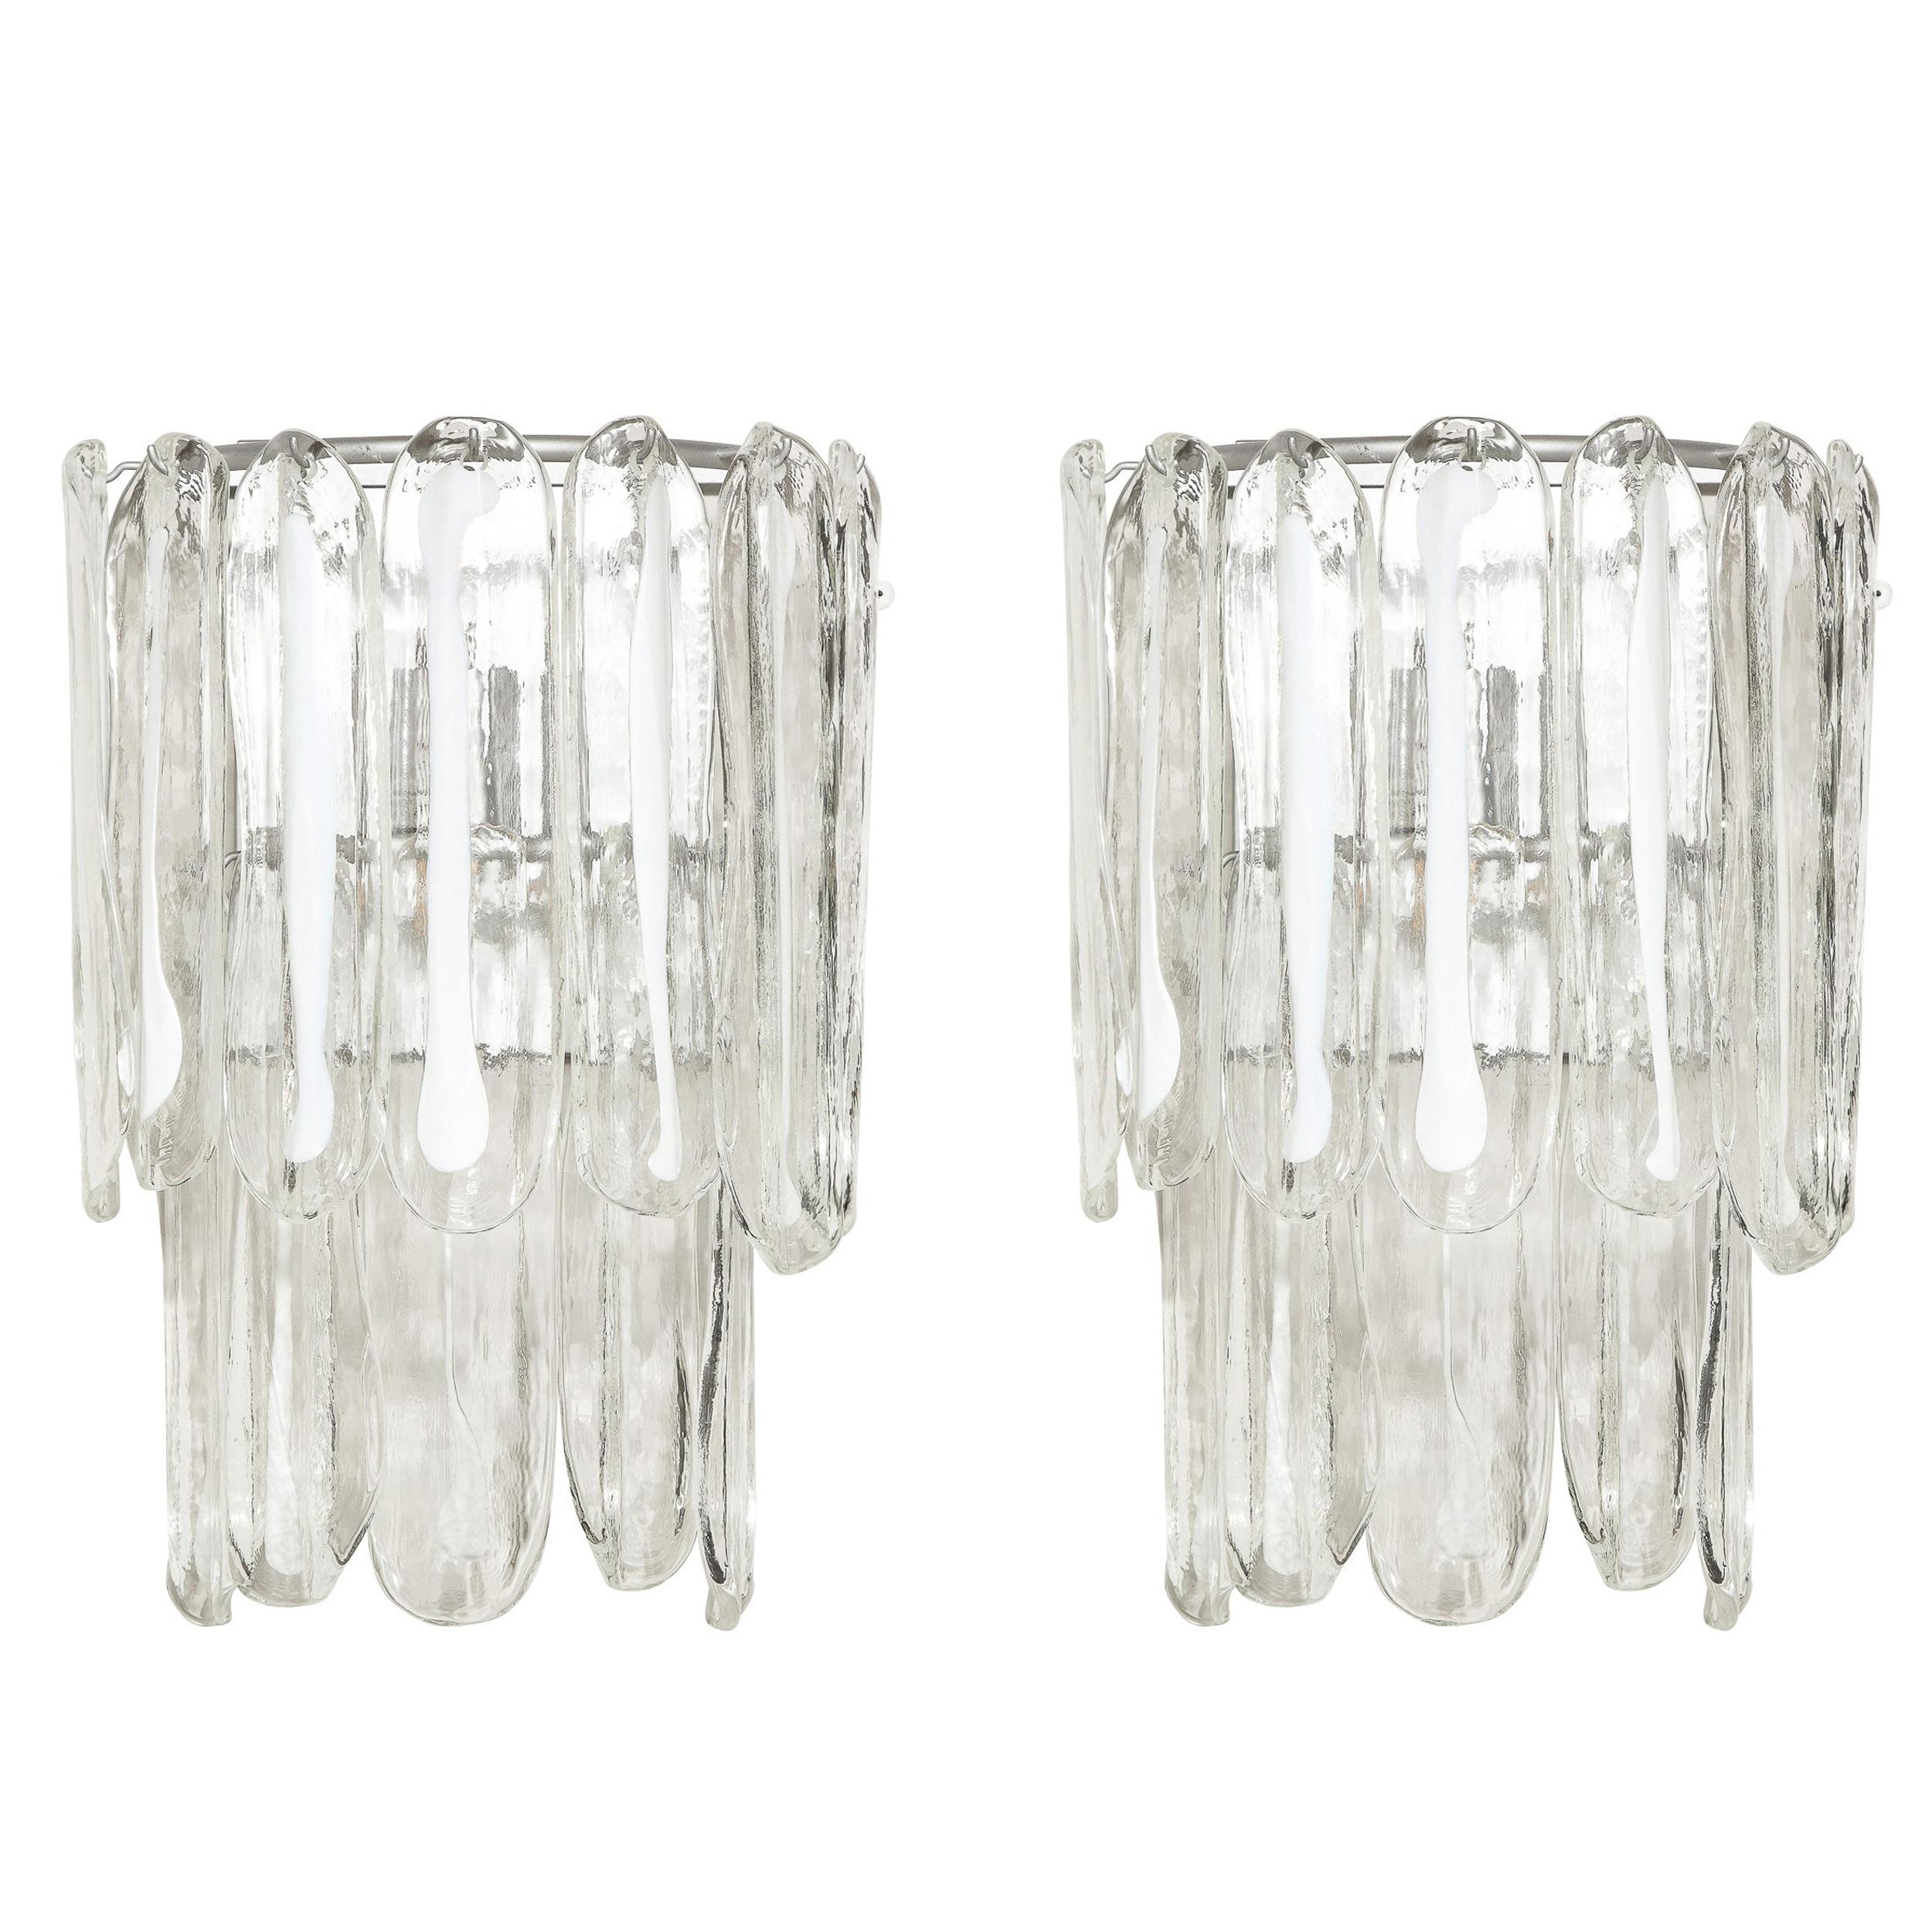 Pair of Mid-Century Modern Translucent & White Murano Glass Sconces by Mazzega